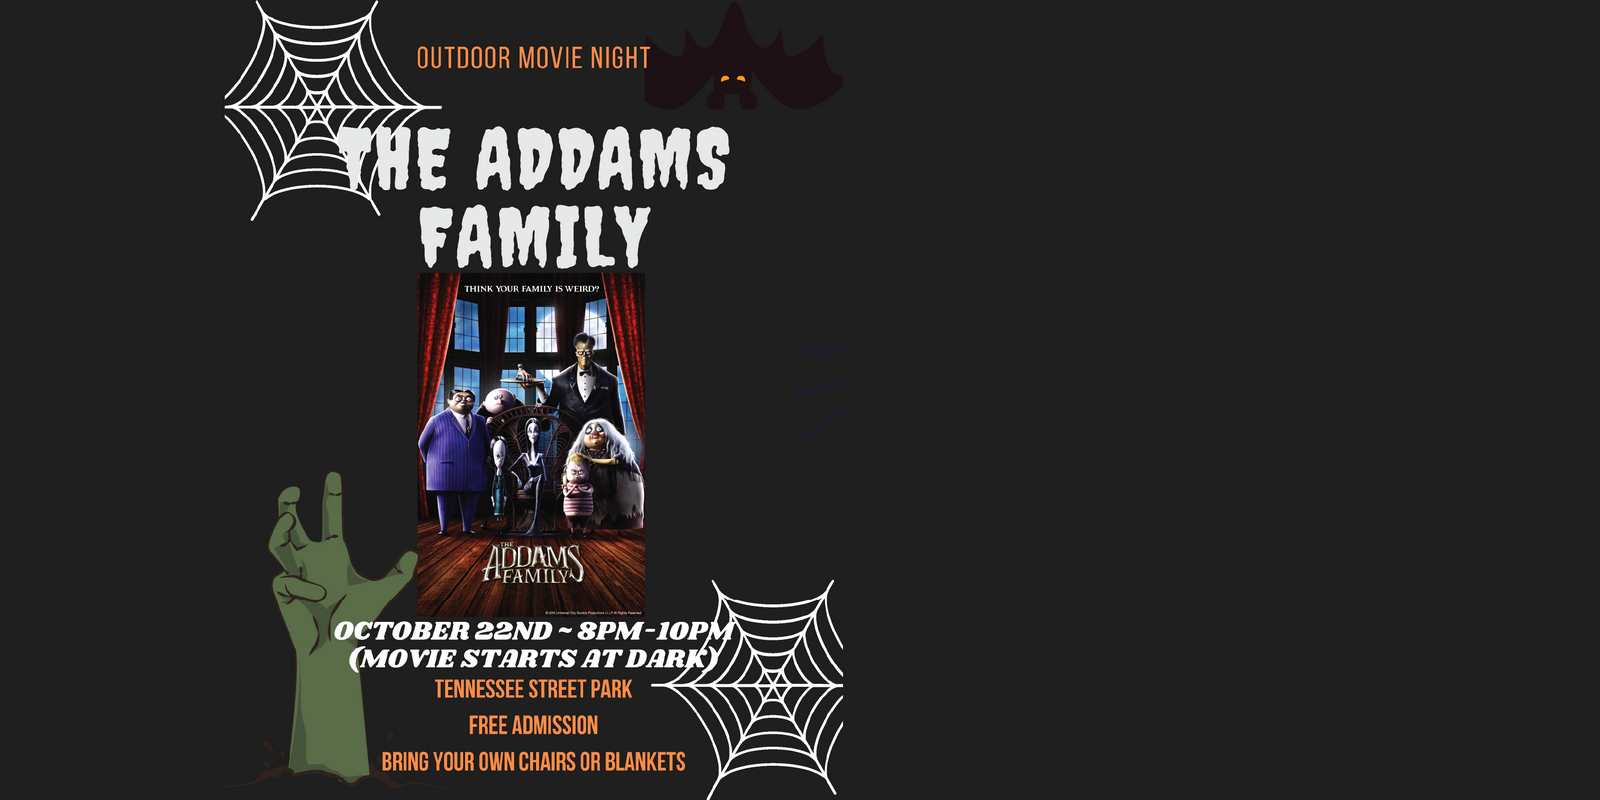 Outdoor Movie Night at Tennessee Street Park